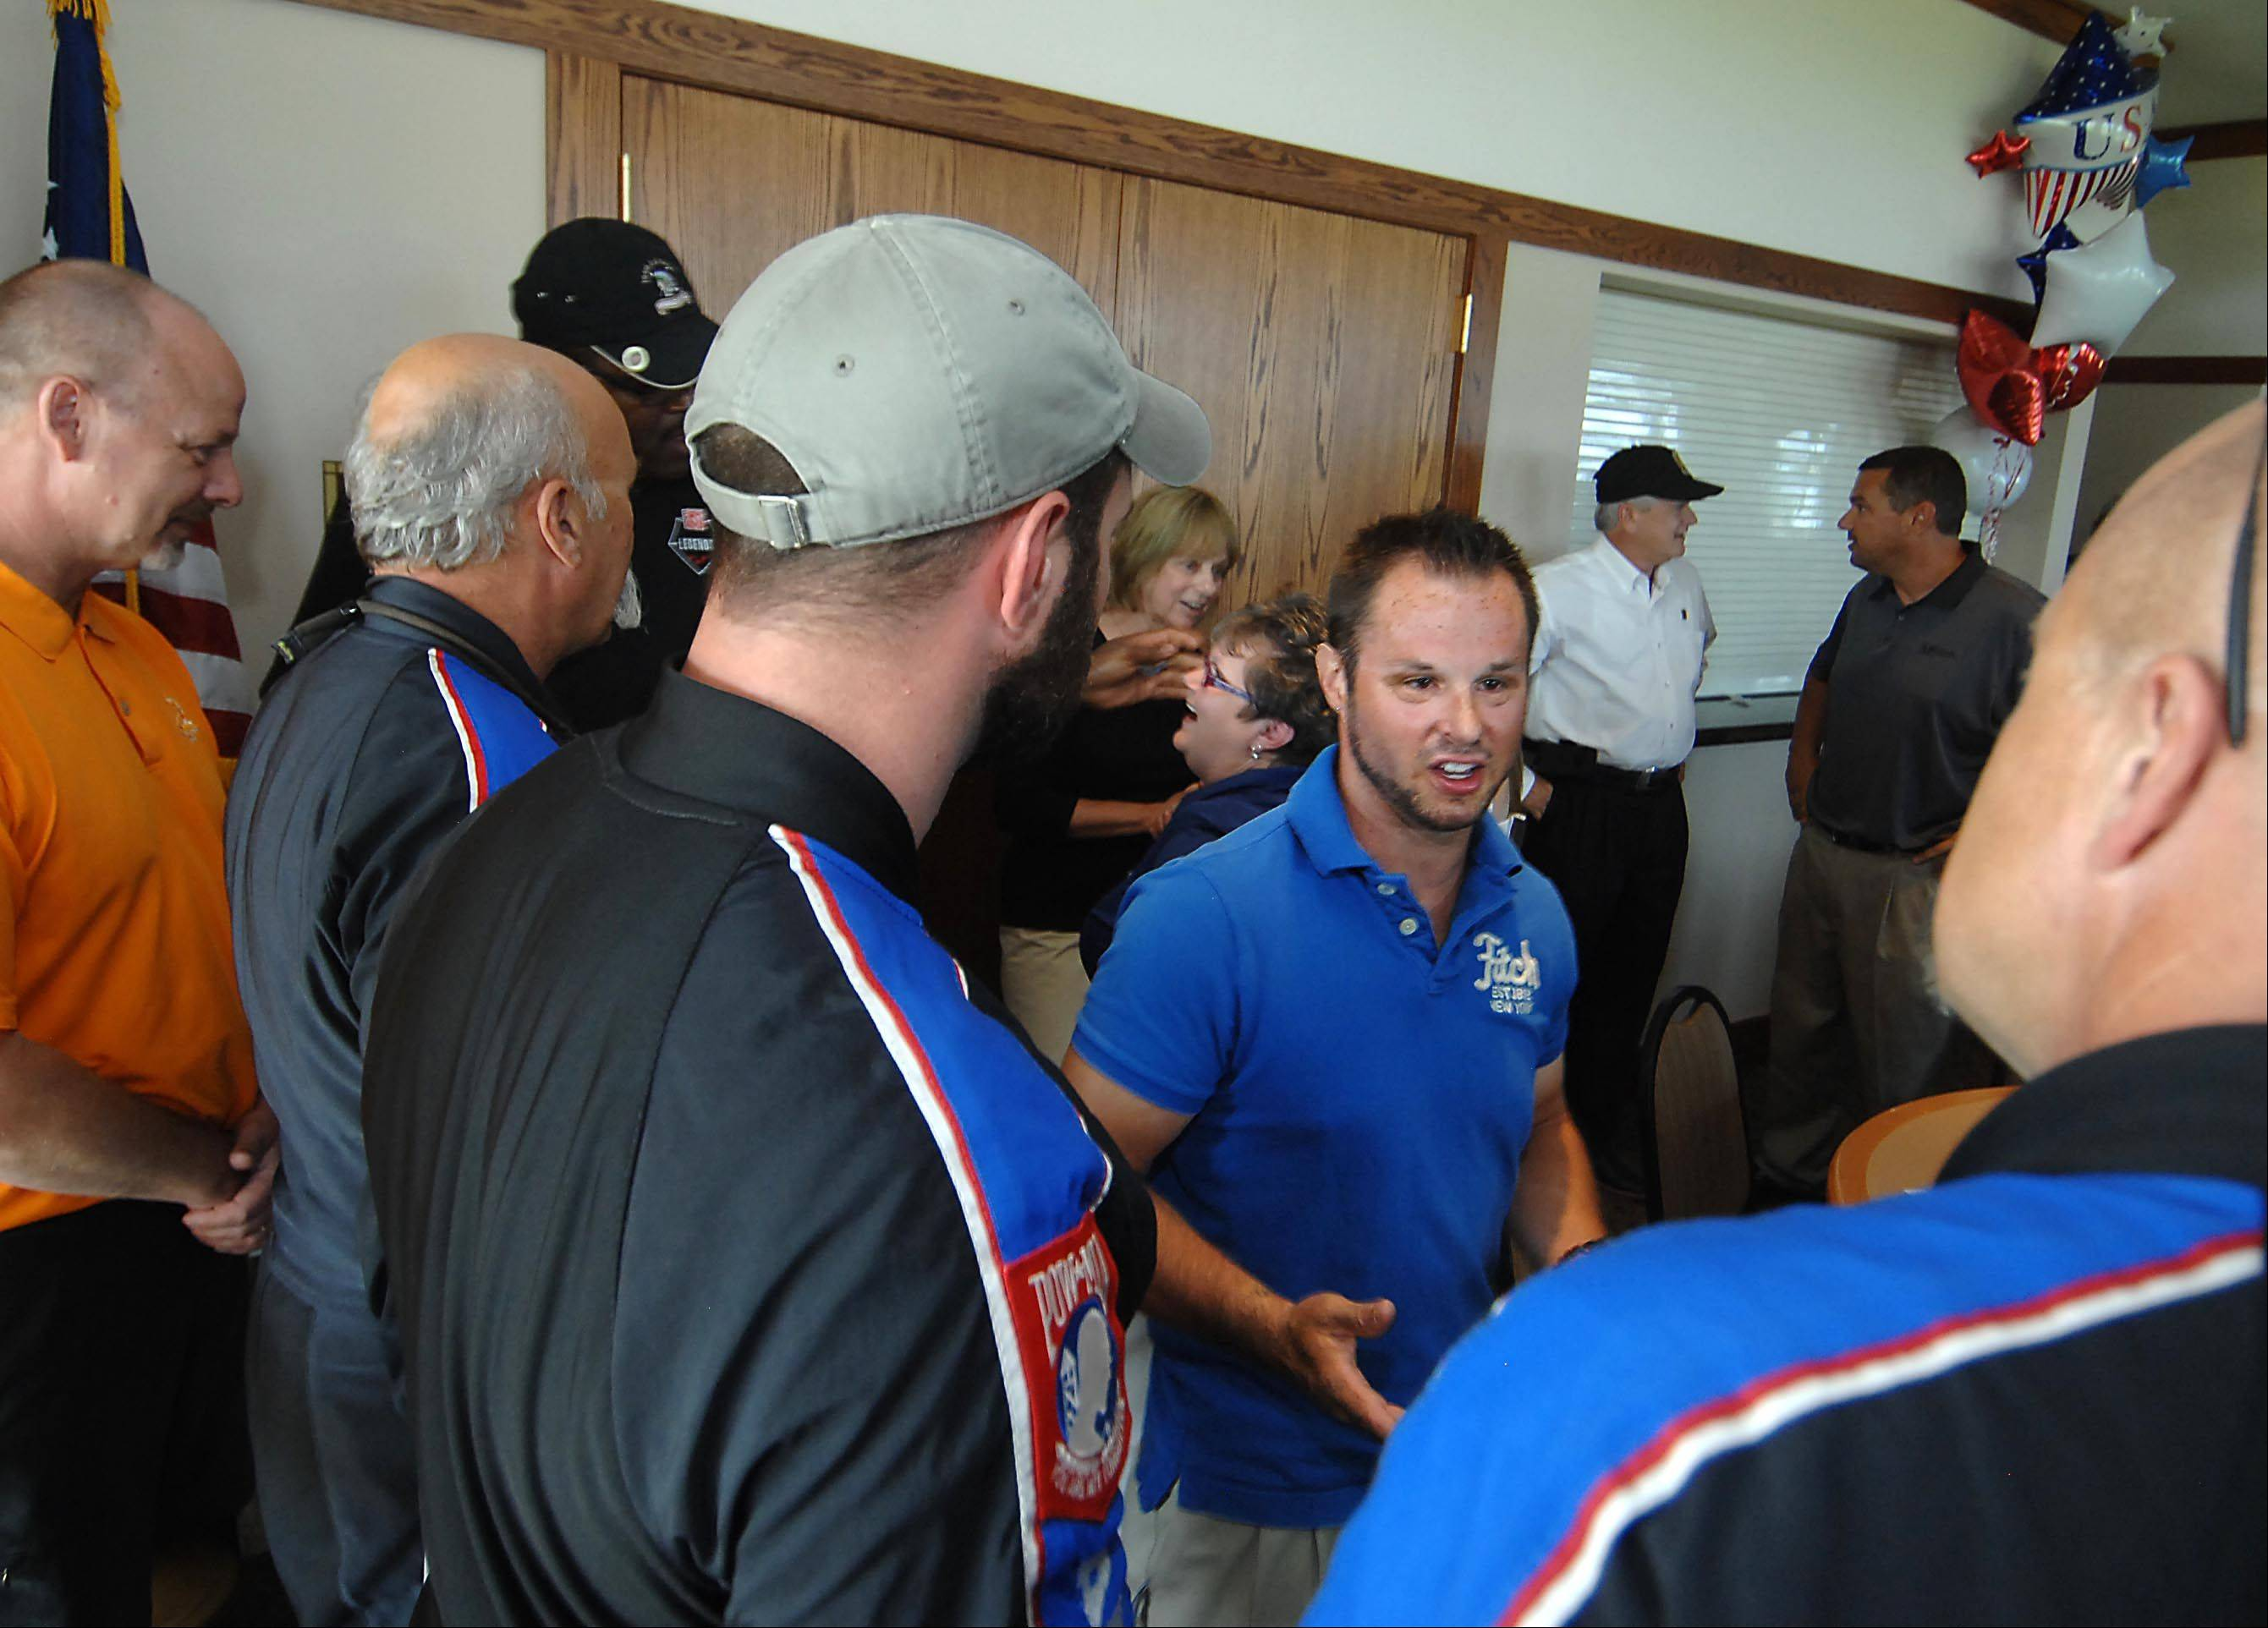 Nick Mapson, 28, talks with skydivers from Team Fastrax Professional Skydiving Thursday after he found out he would be the recipient of a home from the Home Builders Association of Greater Chicago and New American Homes Inc., among a long list of groups that helped with the project.